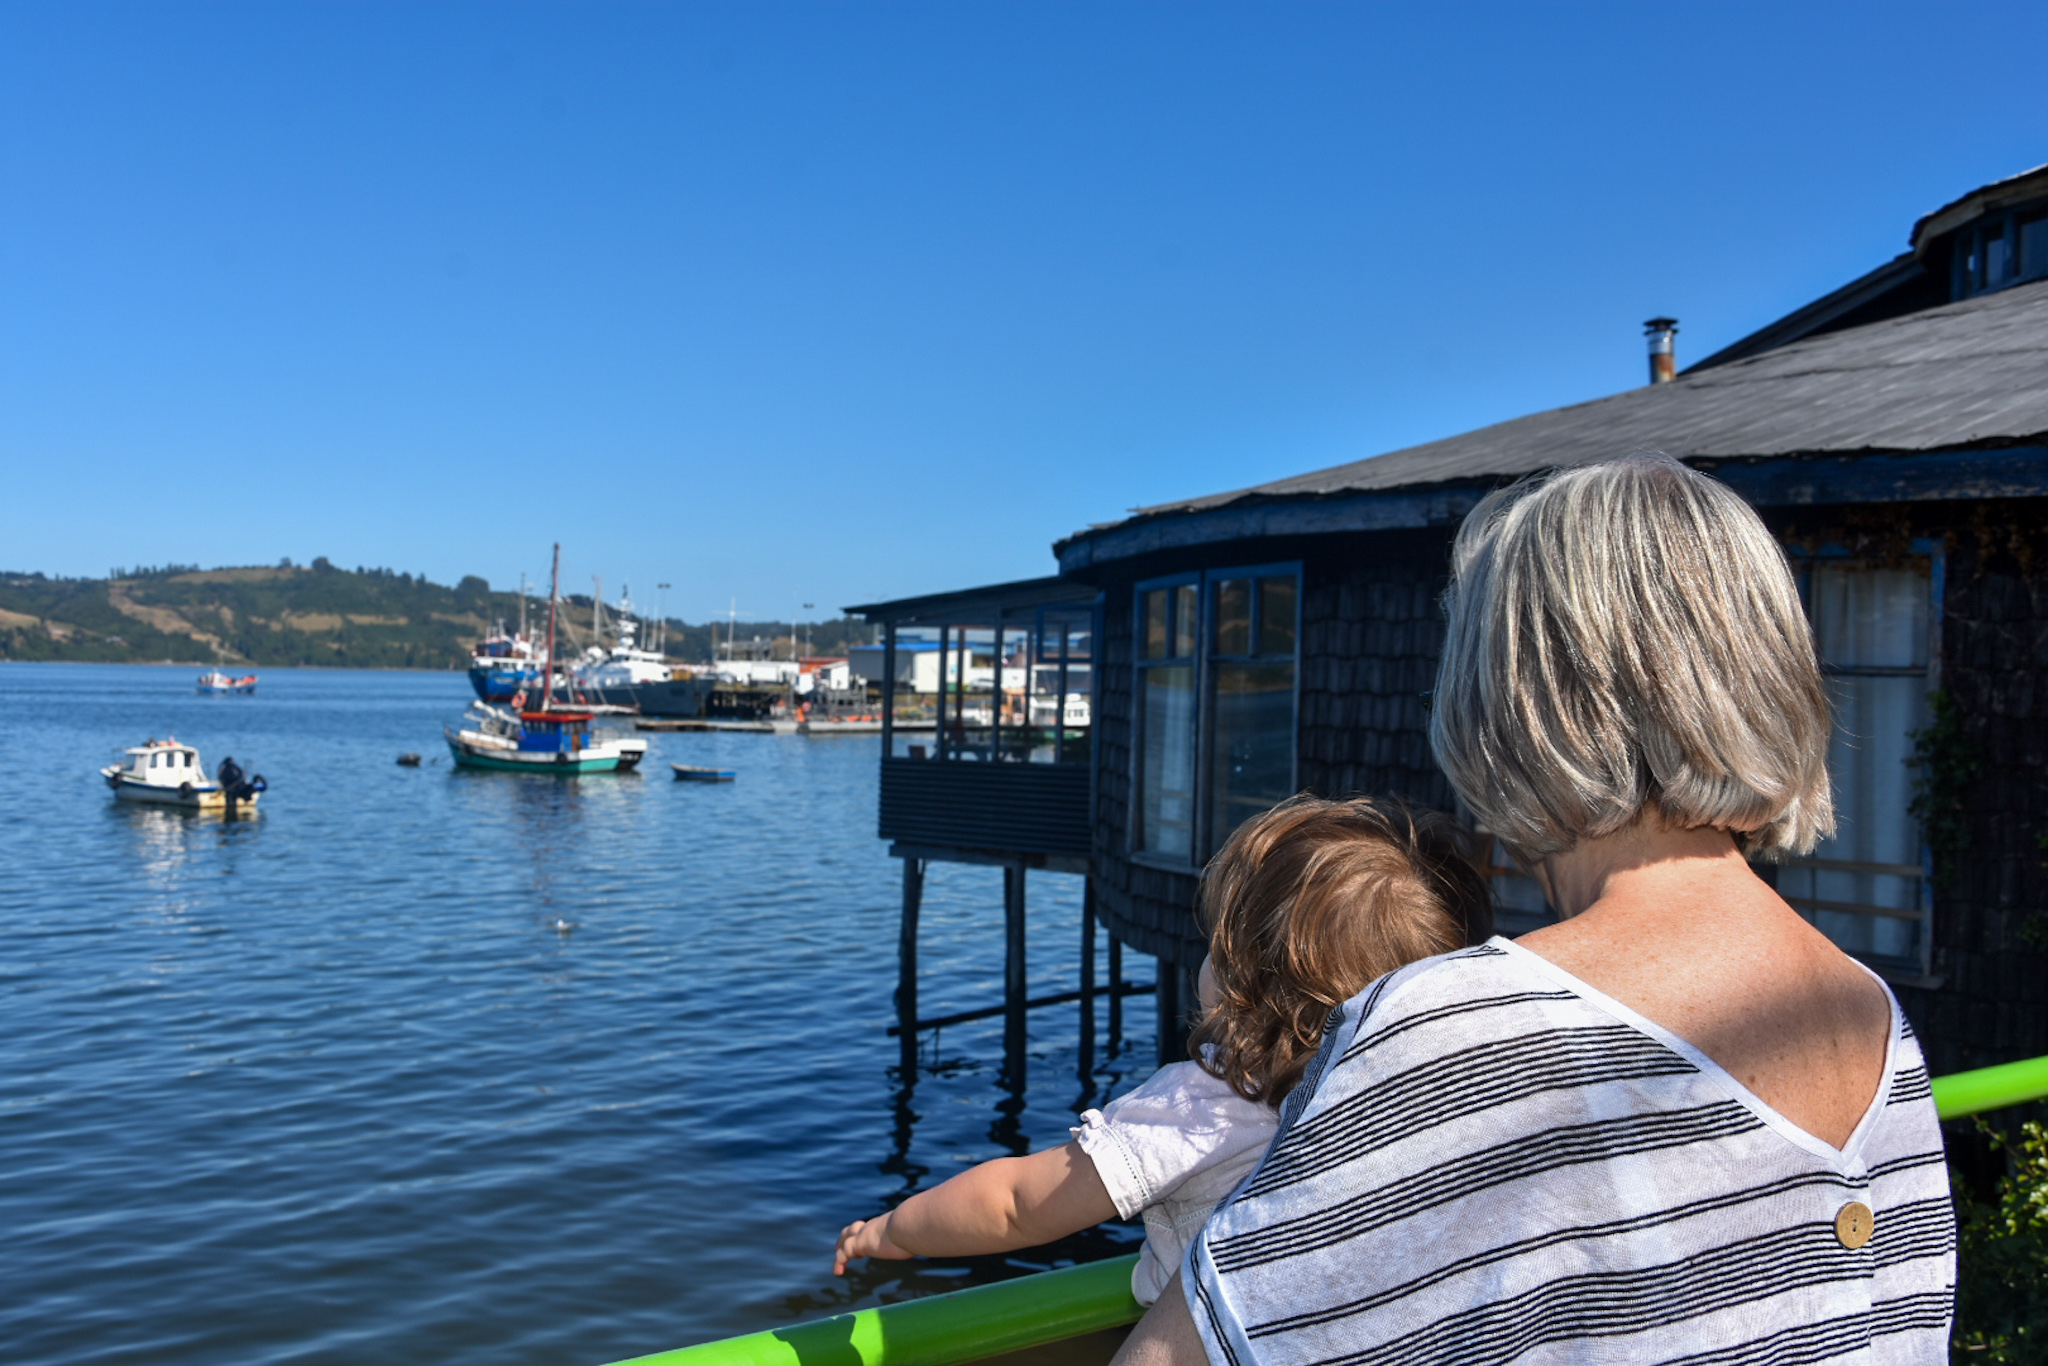 Day trip to Castro, Chiloe